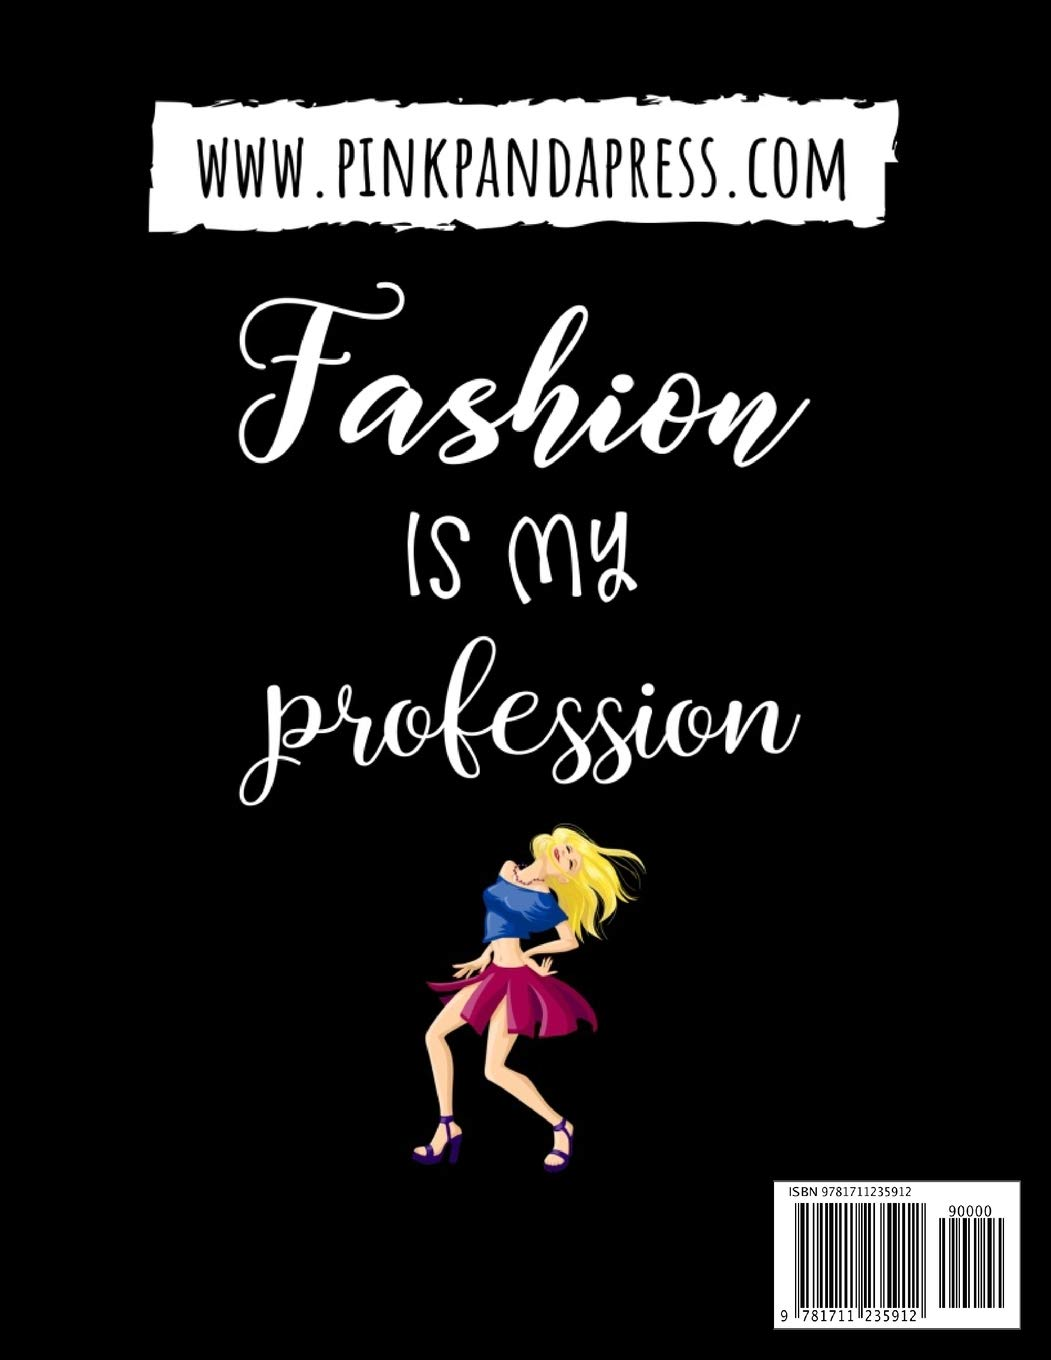 Amazon Com Fashion Is My Profession Sketchbook Figure Template Fashion Design Drawing Gifts For Girls Women 9781711235912 Press Pink Panda Books